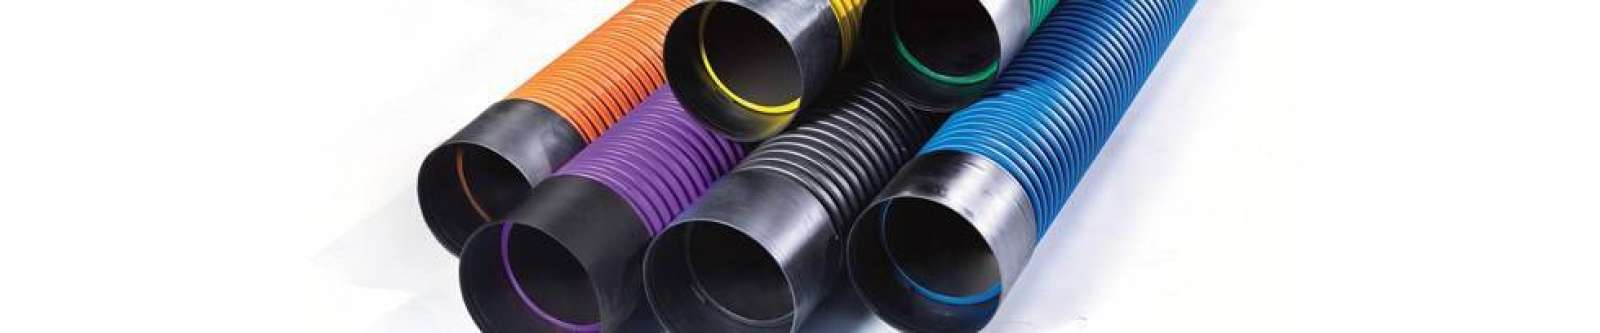 Ridgiduct Utilities | Cable Protection | Polypipe Civils